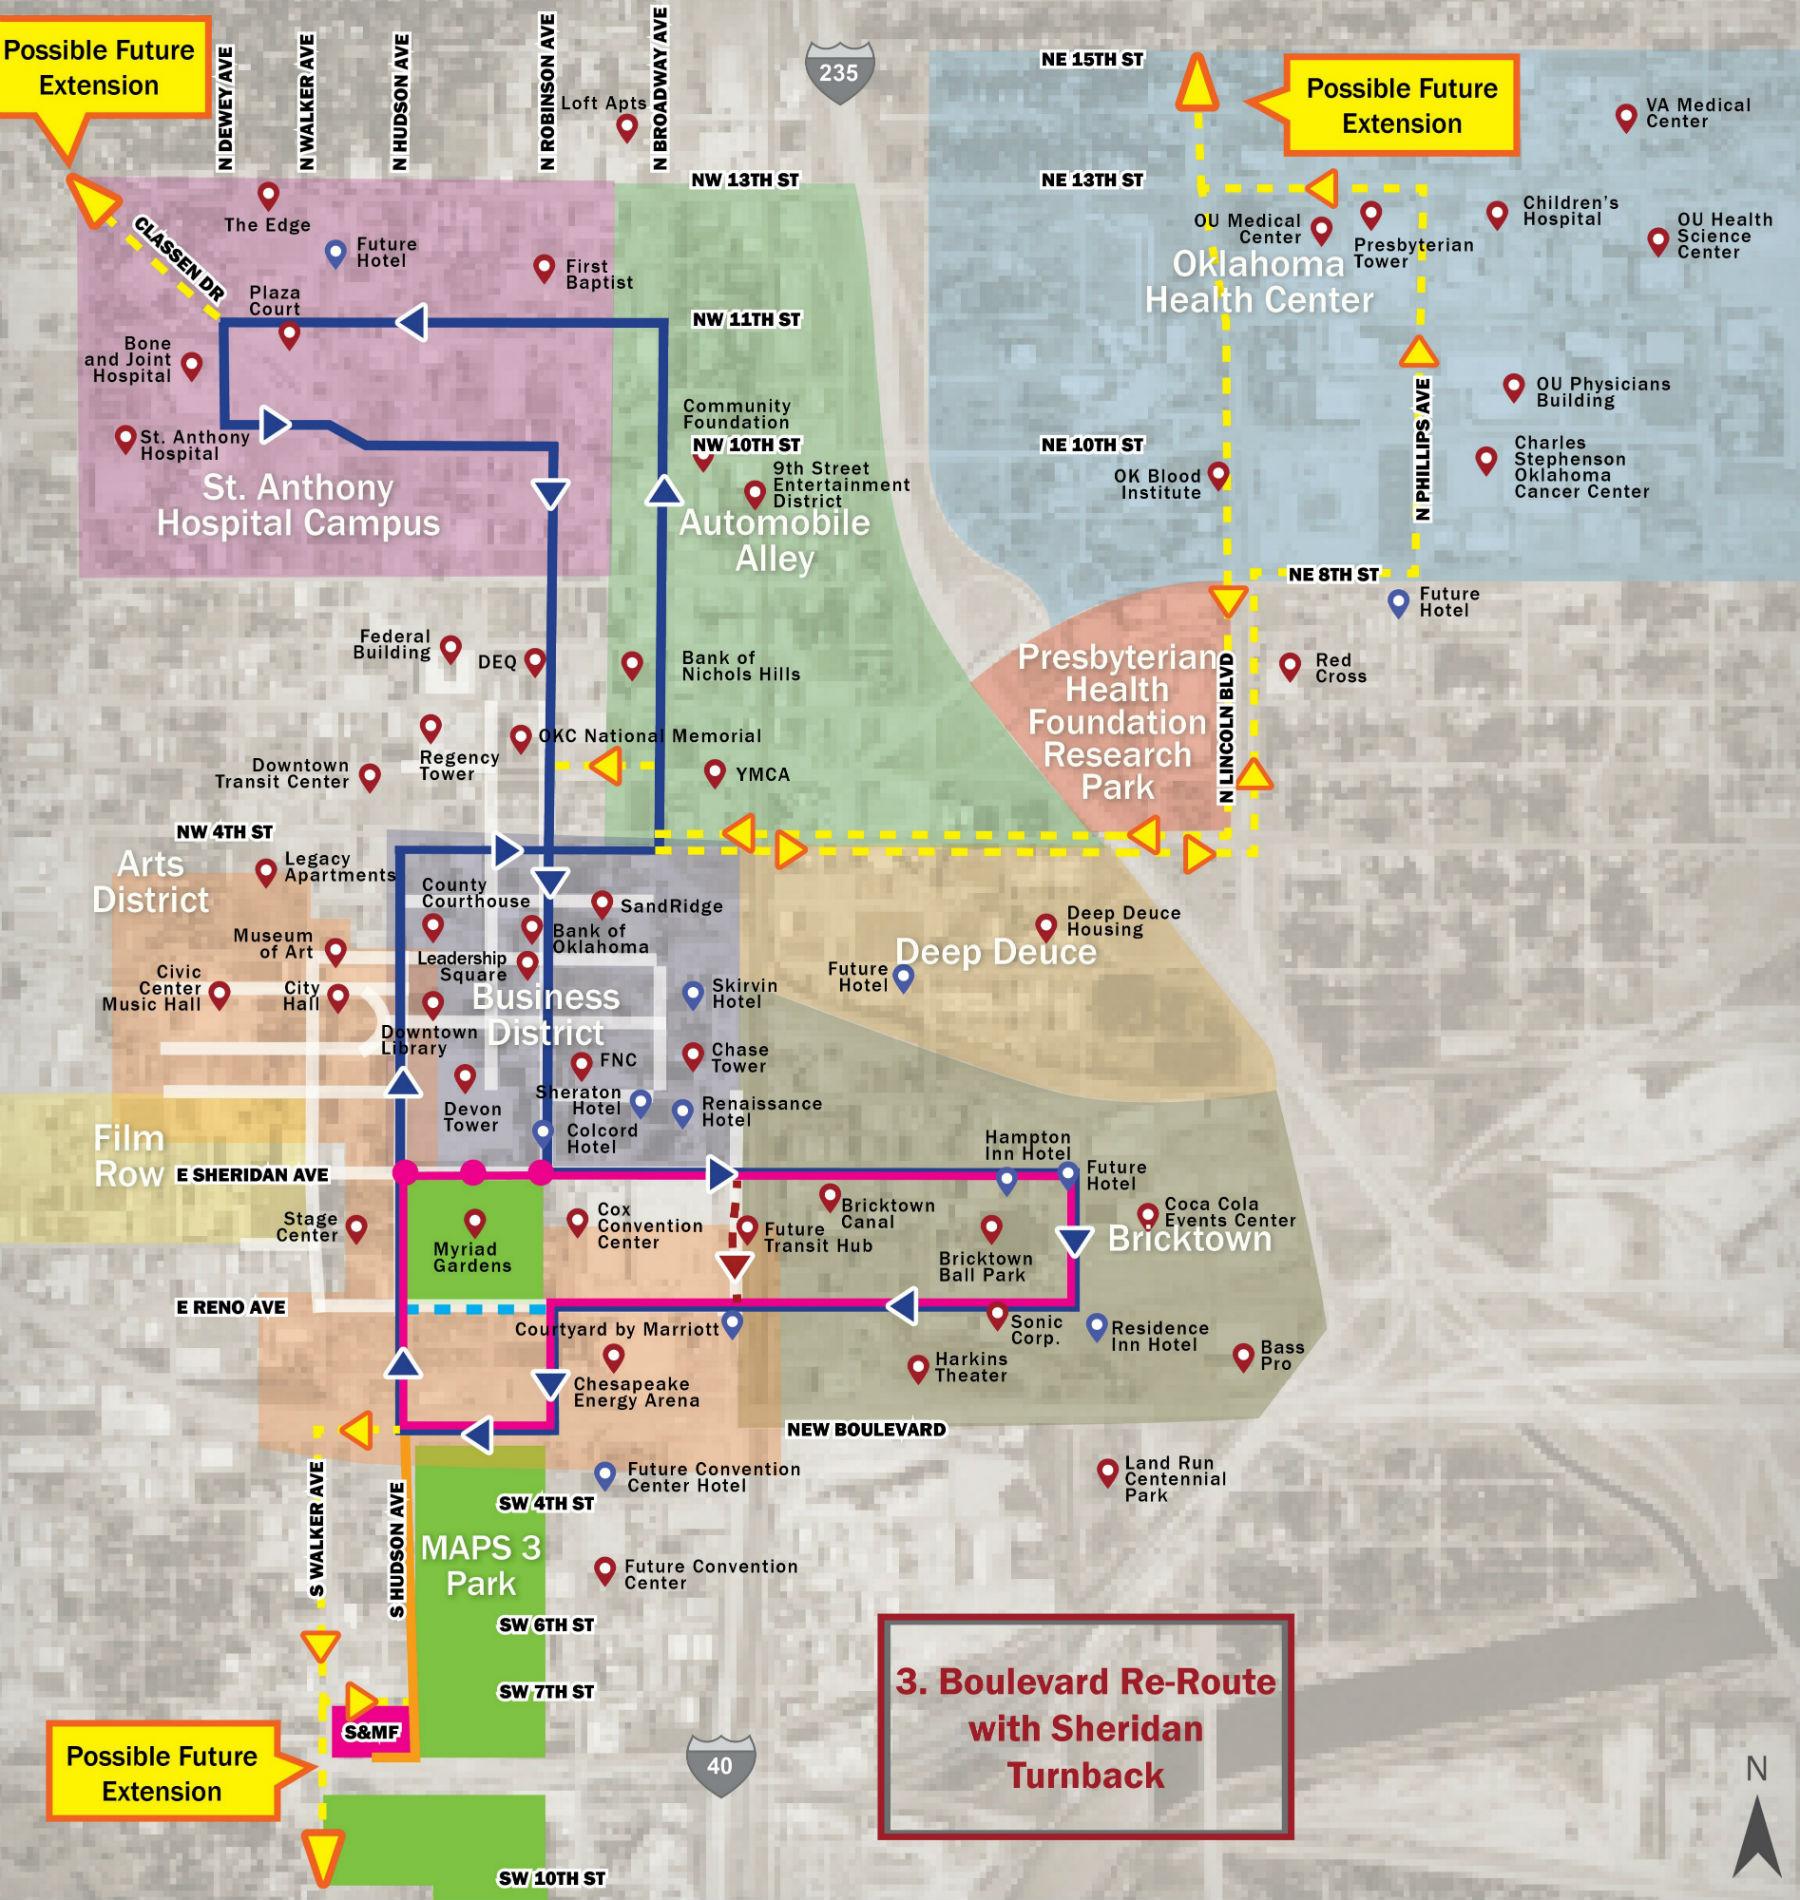 OKC Council approves new MAPS 3 Modern Streetcar routes | News List on pull down map, zoomed in houston tx map, interactive world globe map, create a route map, ebola outbreak 2014 map, ancient world map, abu dhabi on world map, nasa digital world map, close up map, full screen usa map, pull up map, social media map, zanzibar world map, interactive us road map, large flat world map, search map, zermatt switzerland map, view map, silverlight virtual earth map, isis in map,